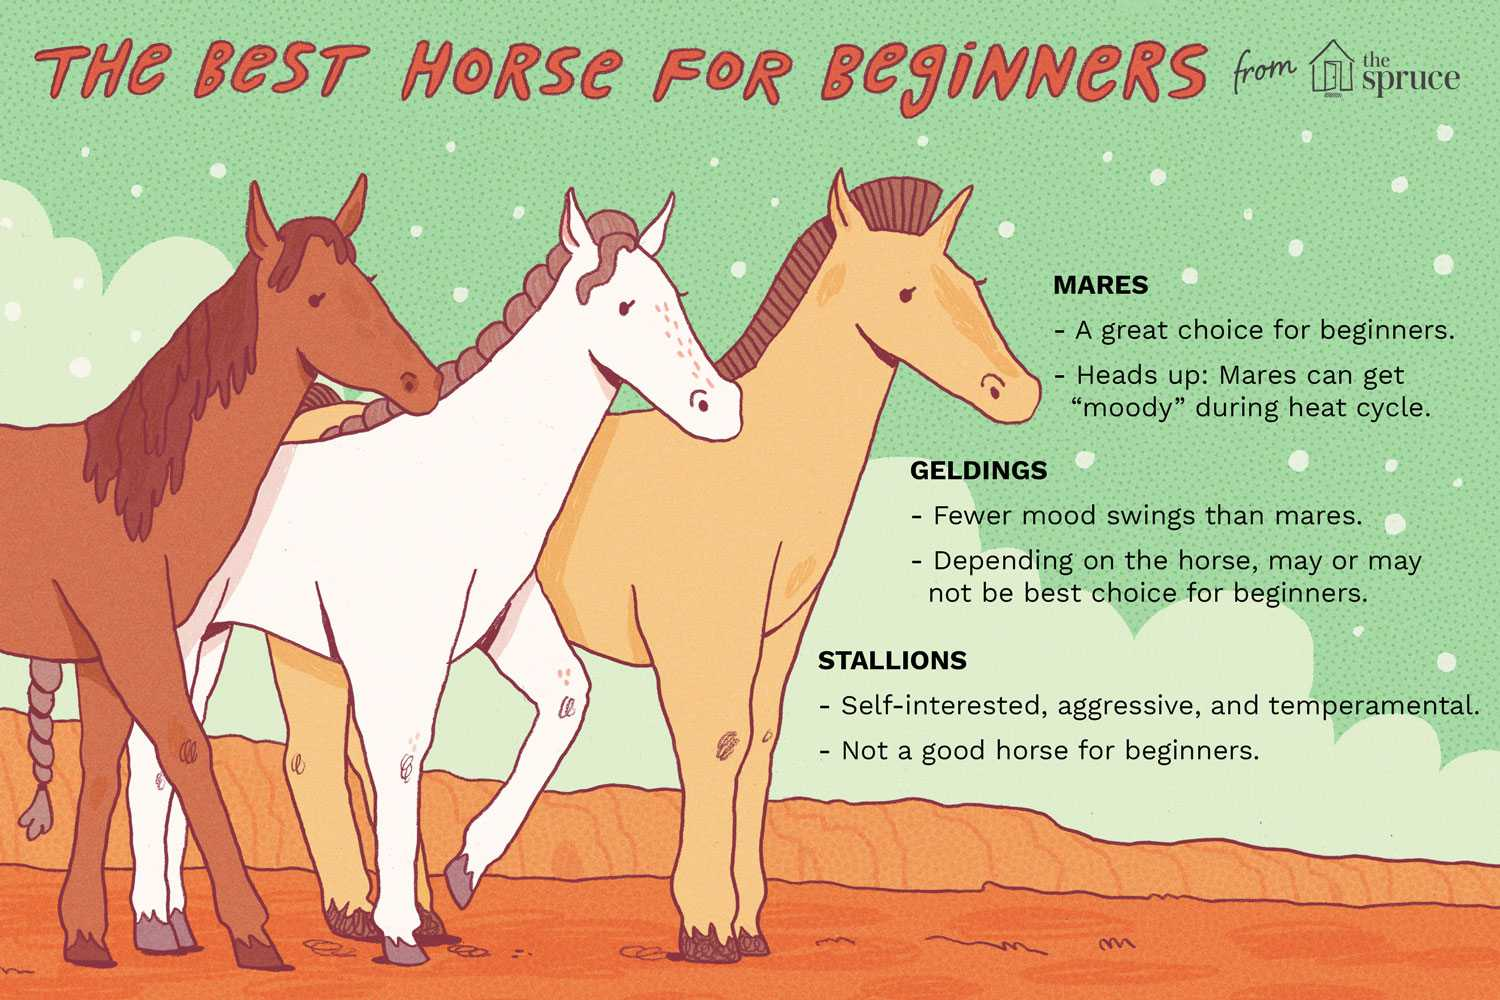 What's Best, a Mare, Gelding or Stallion?